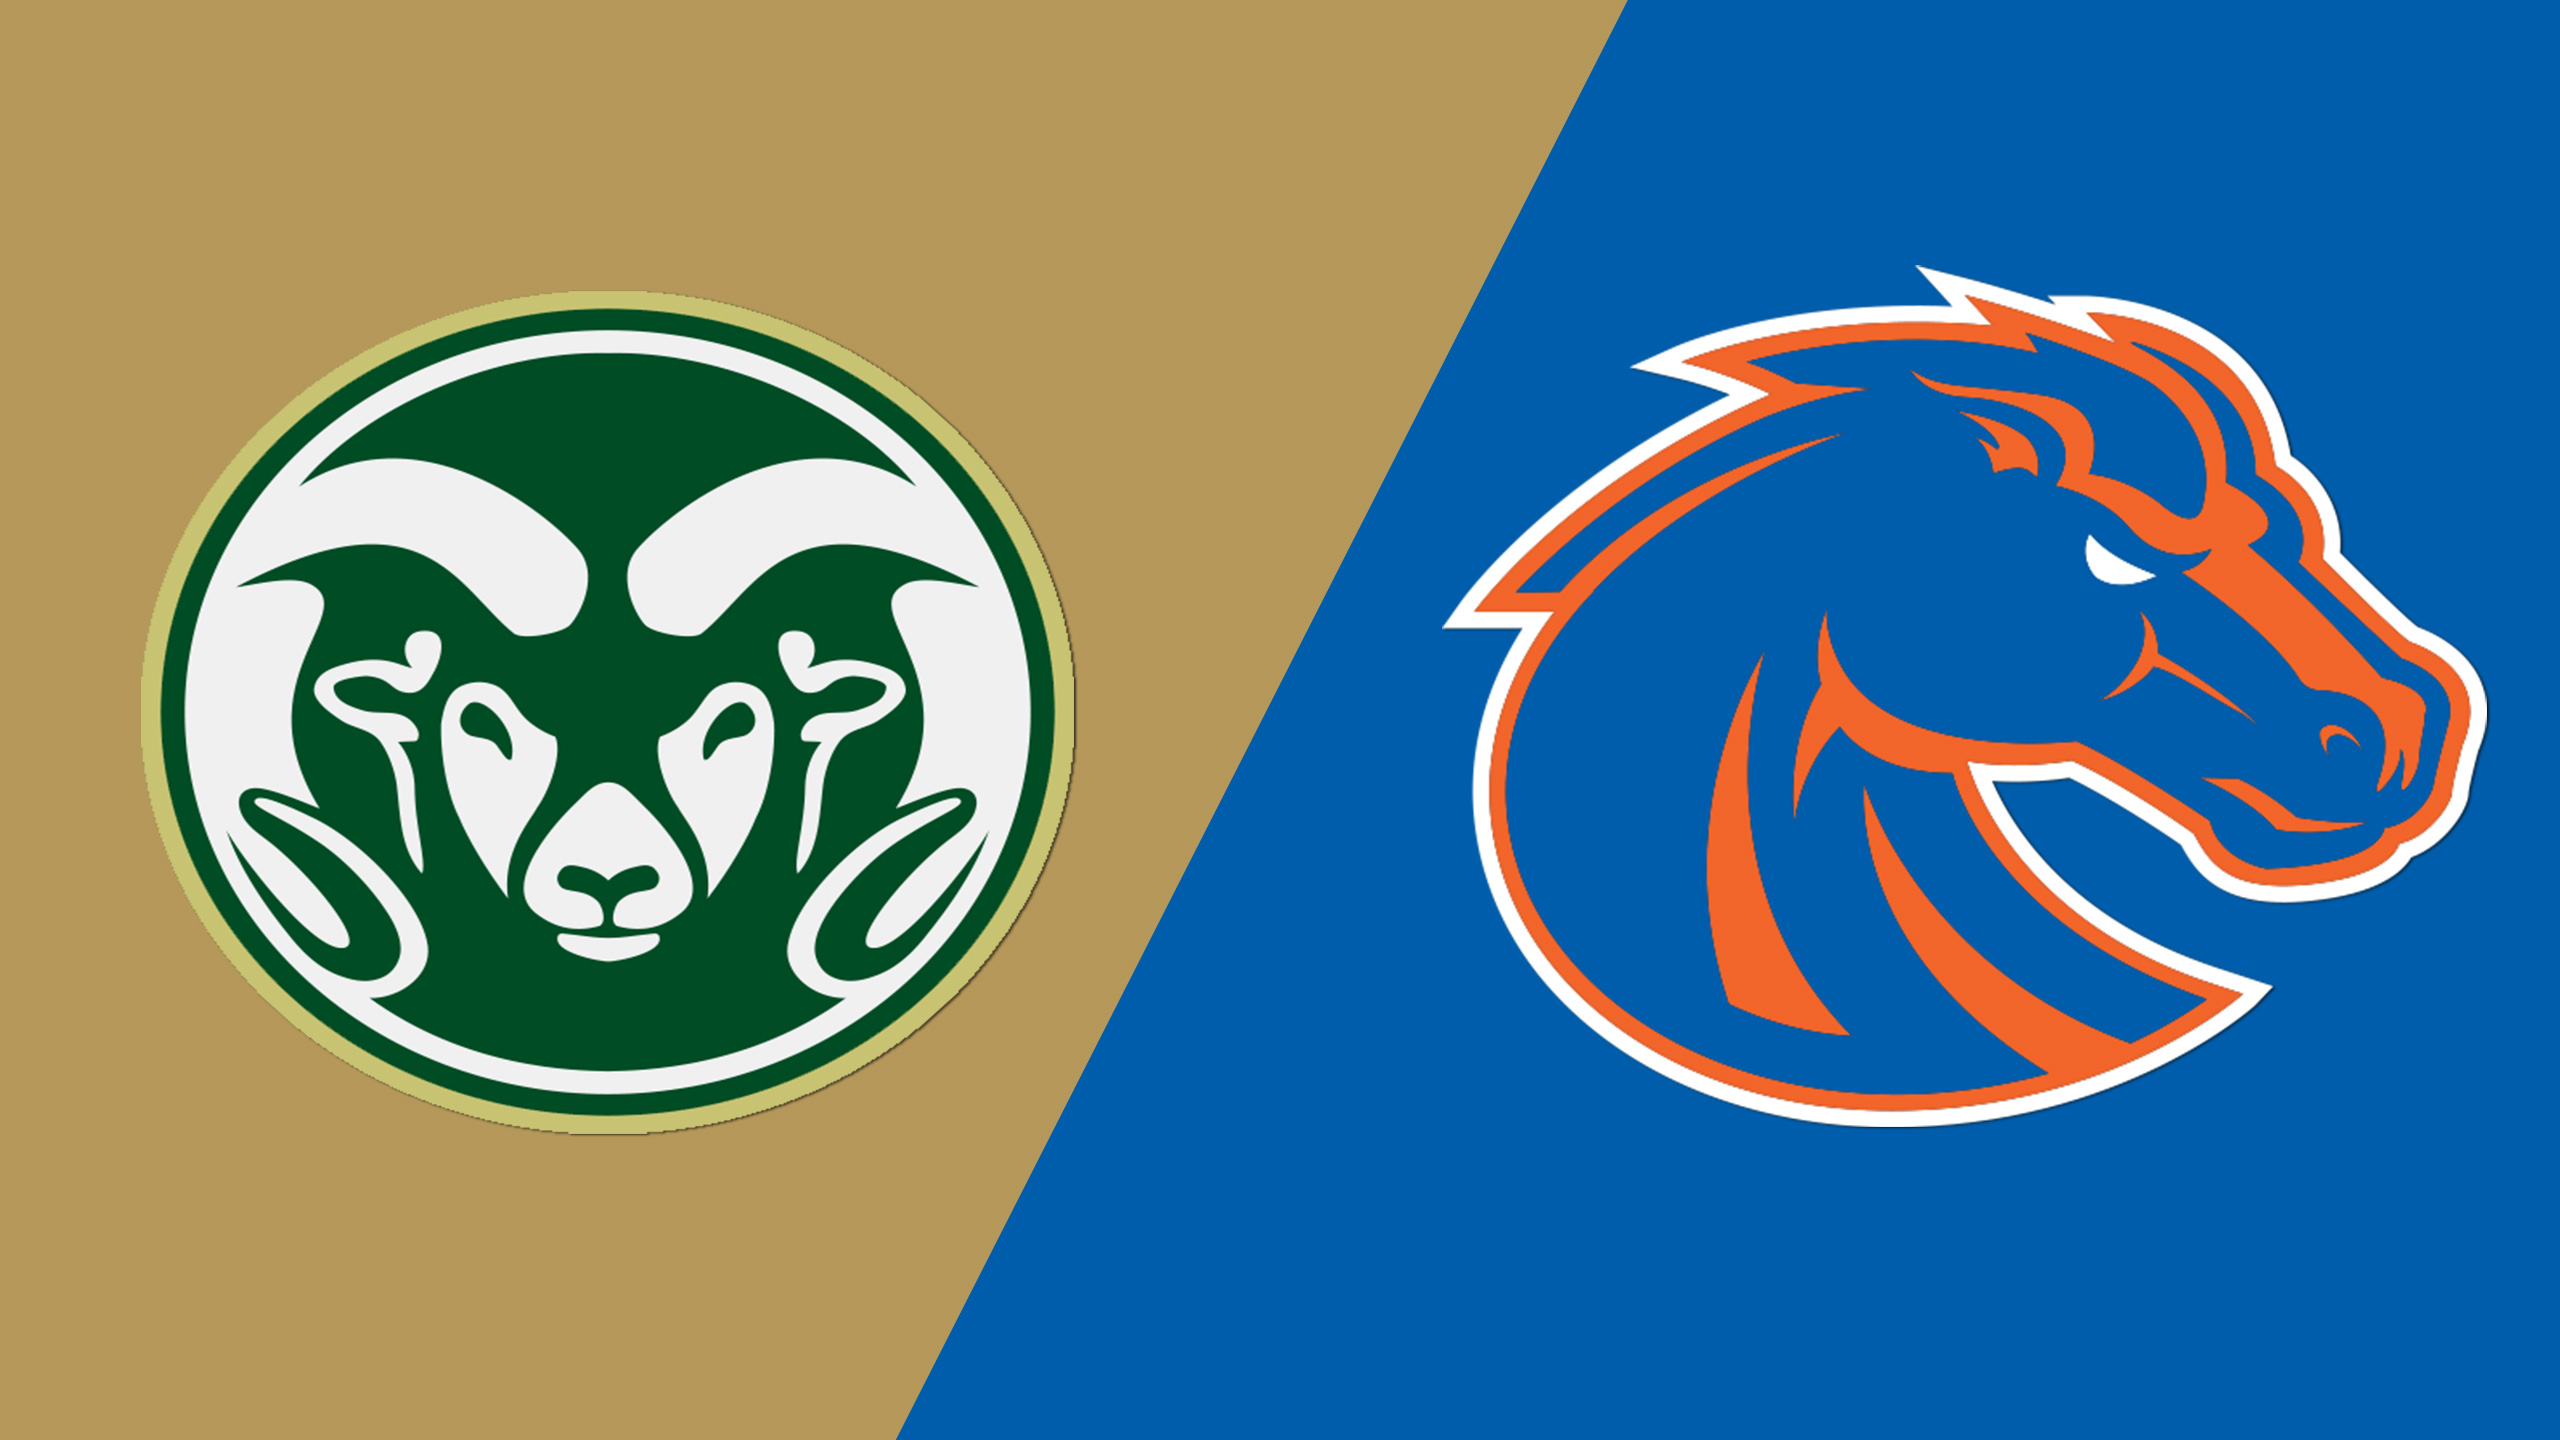 In Spanish - Colorado State vs. Boise State (Football)